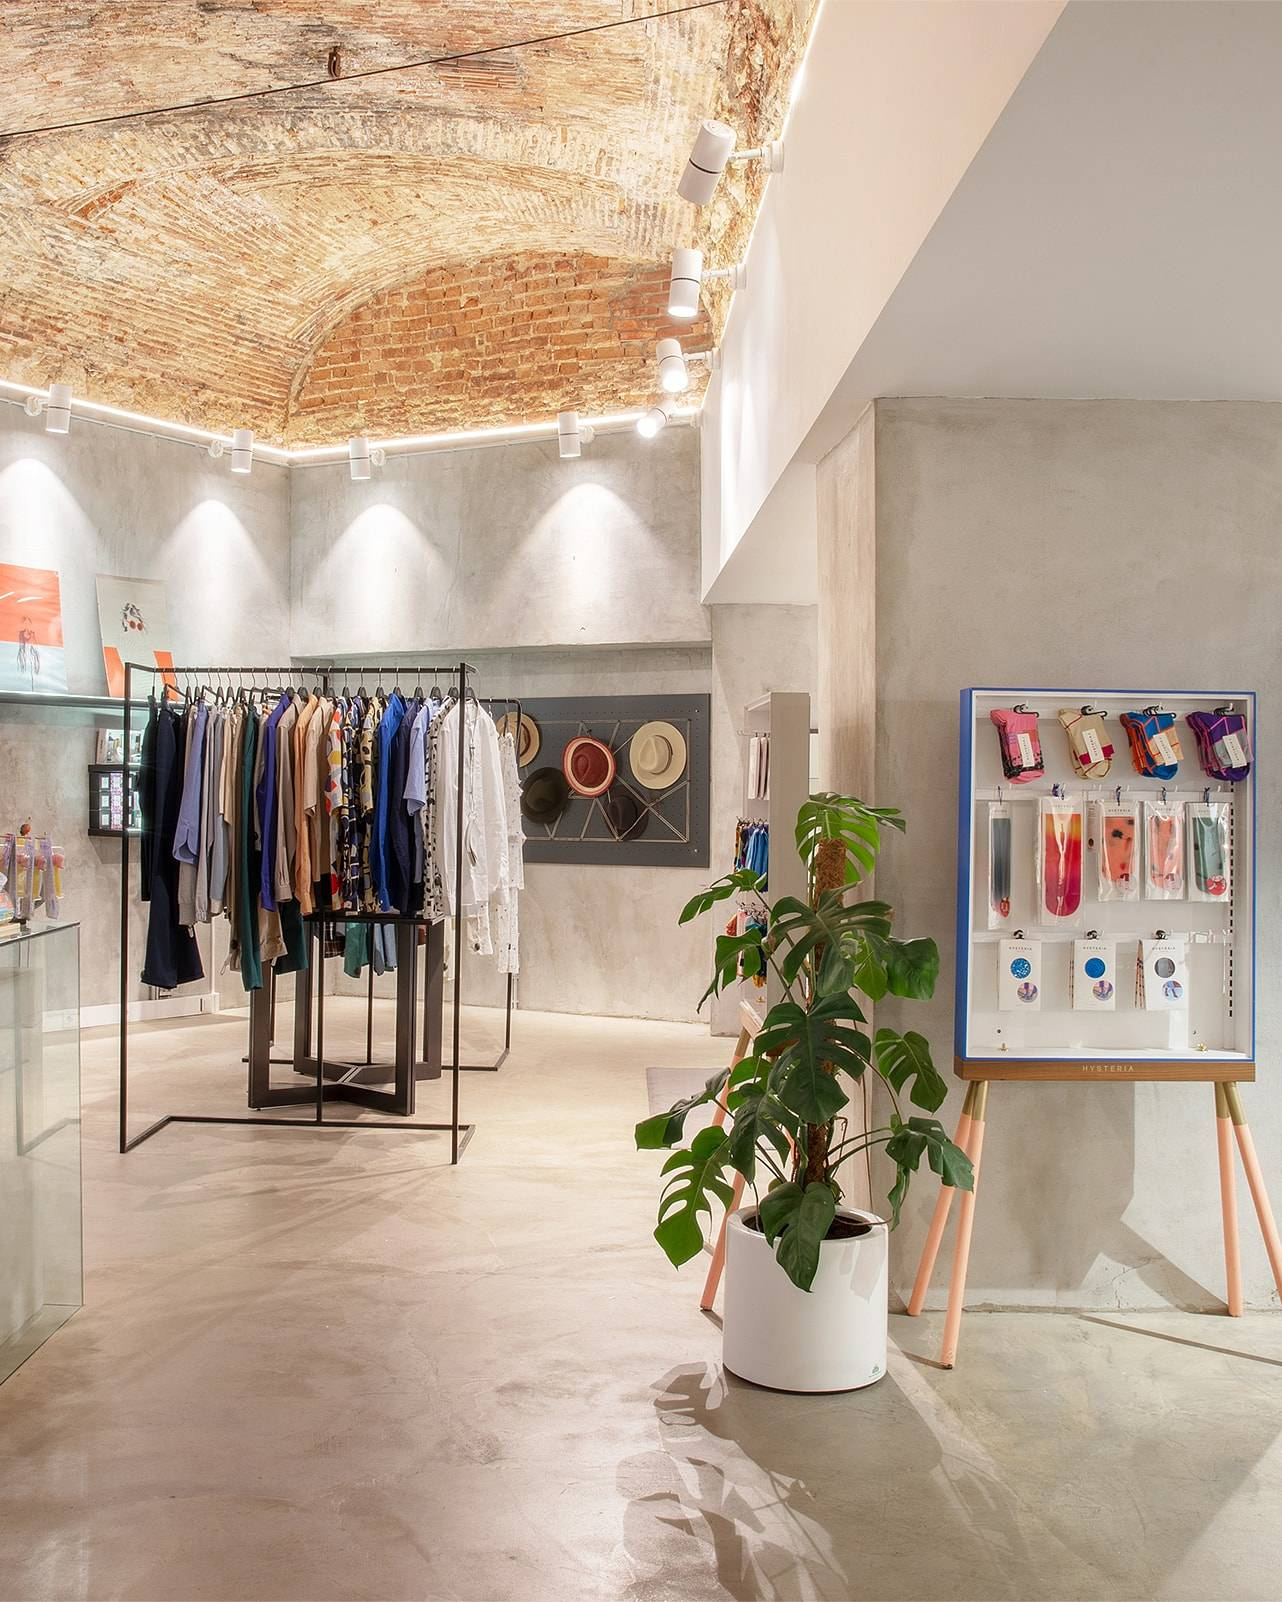 Inside view at The Feeting Room curated concept shop in downtown Lisboa